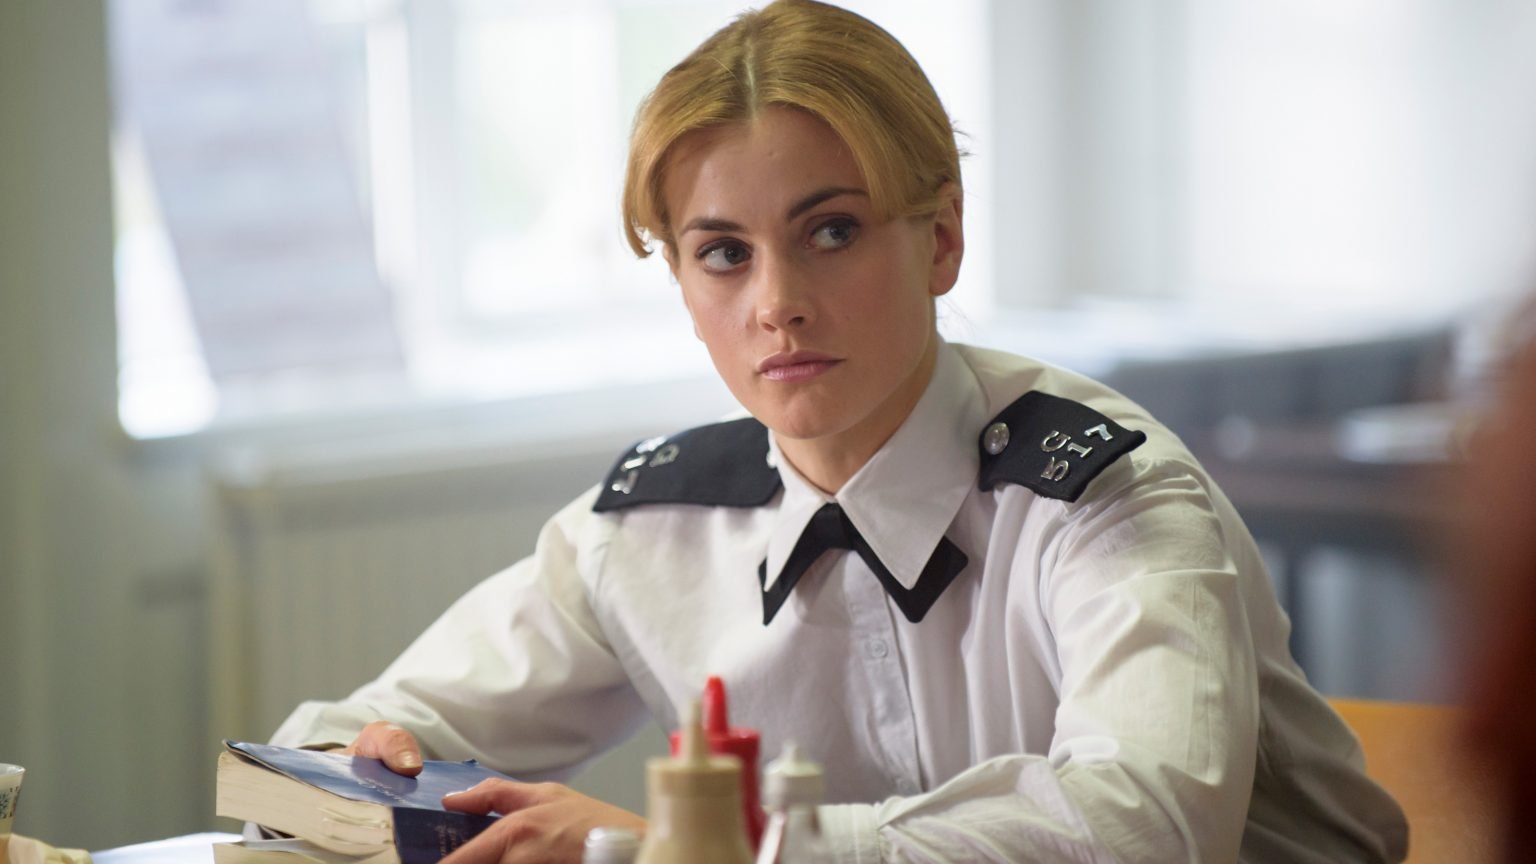 Stefanie Martini as the young Jane Tennison. / Courtesy: ITV